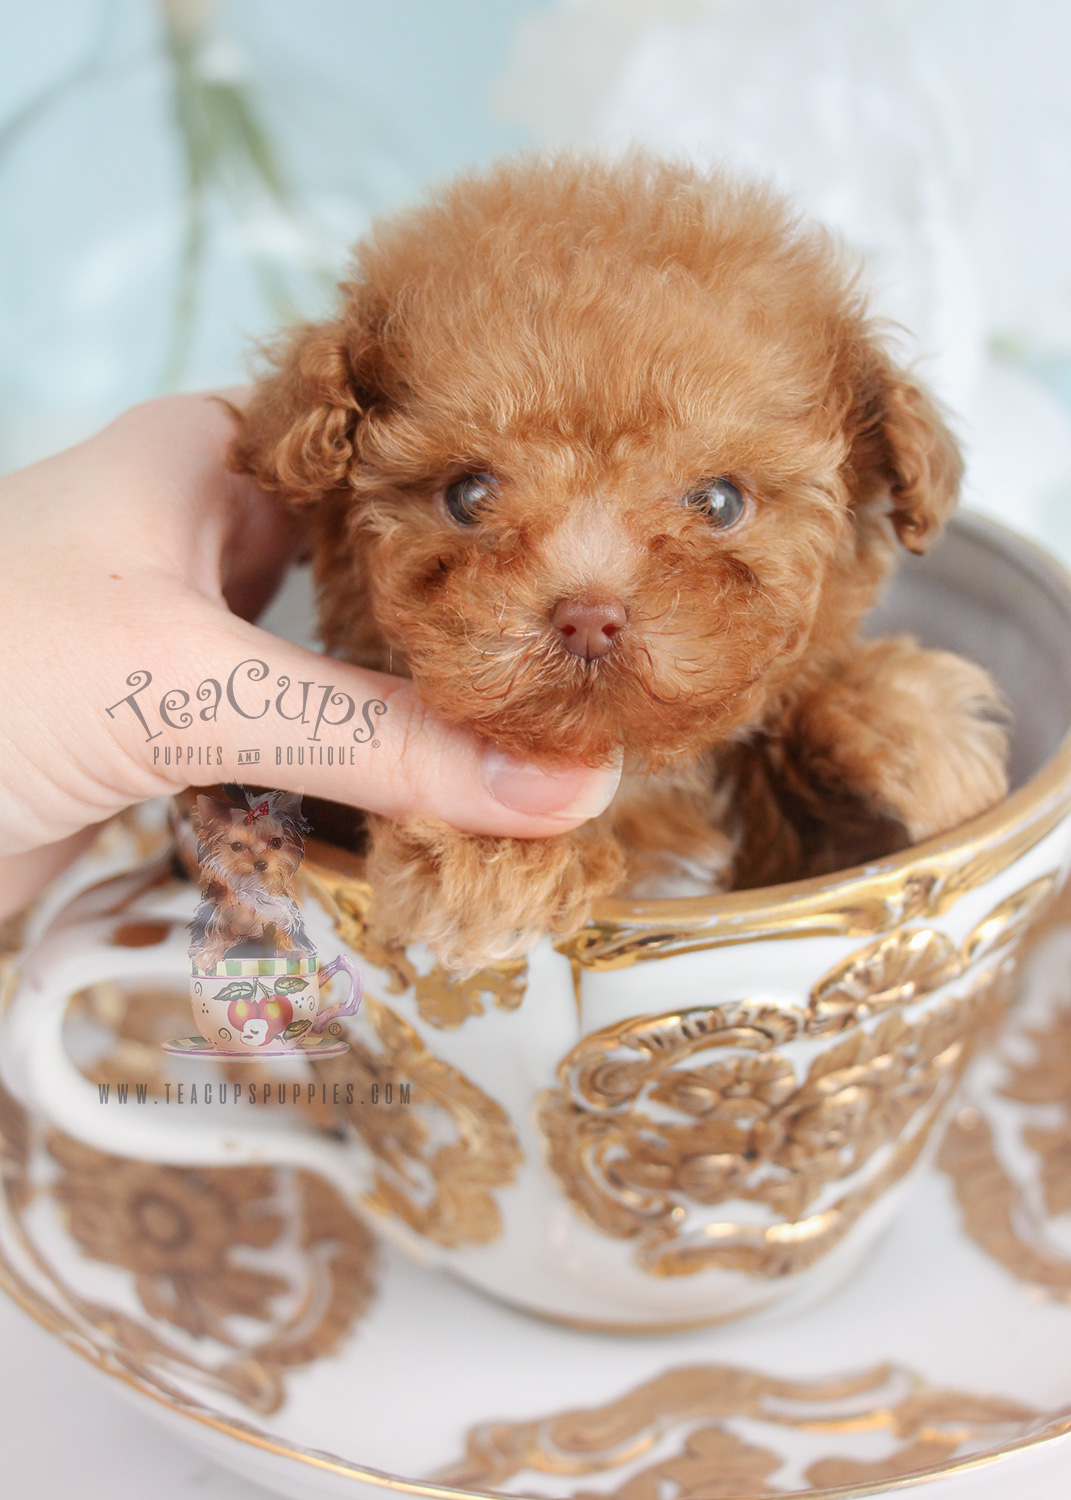 Tiny Poodle Puppy For Sale Teacup Puppies